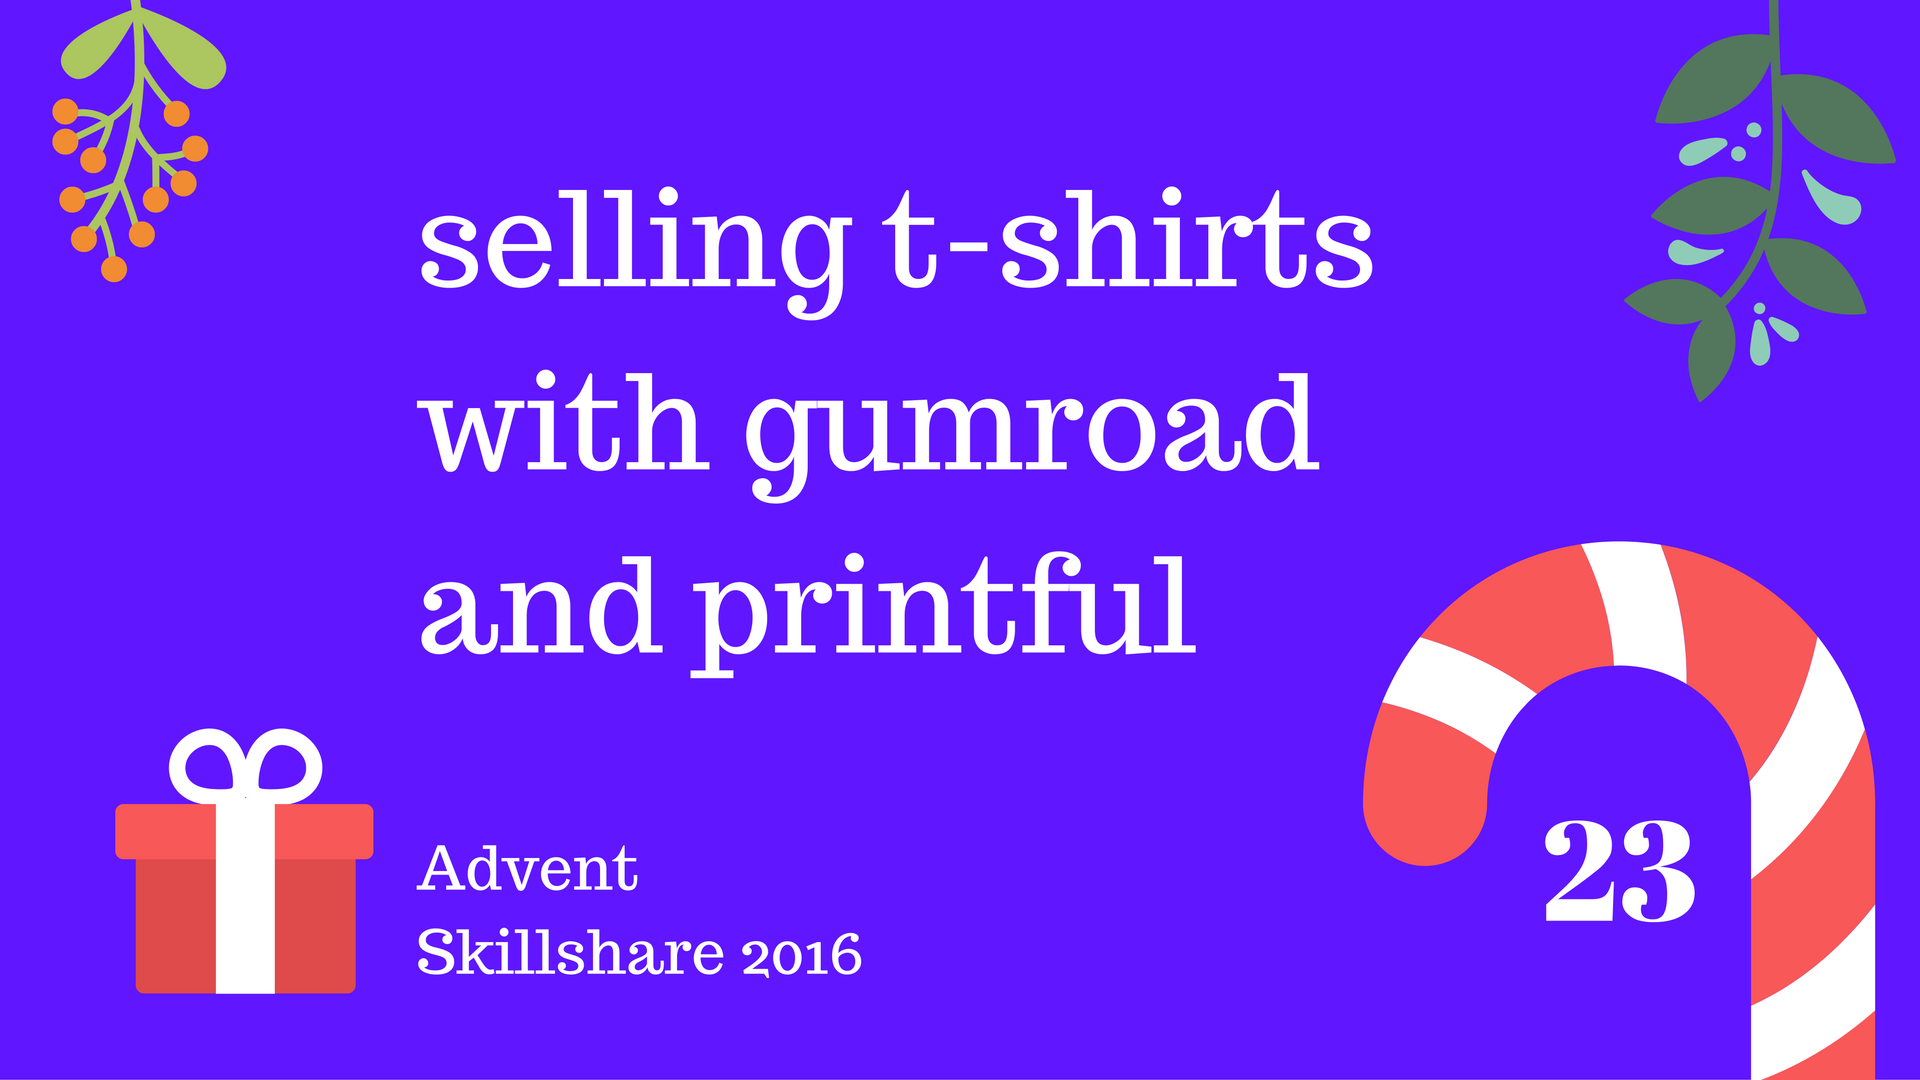 selling tshirts with gumroad and printful | Philip 'dm' Campbell